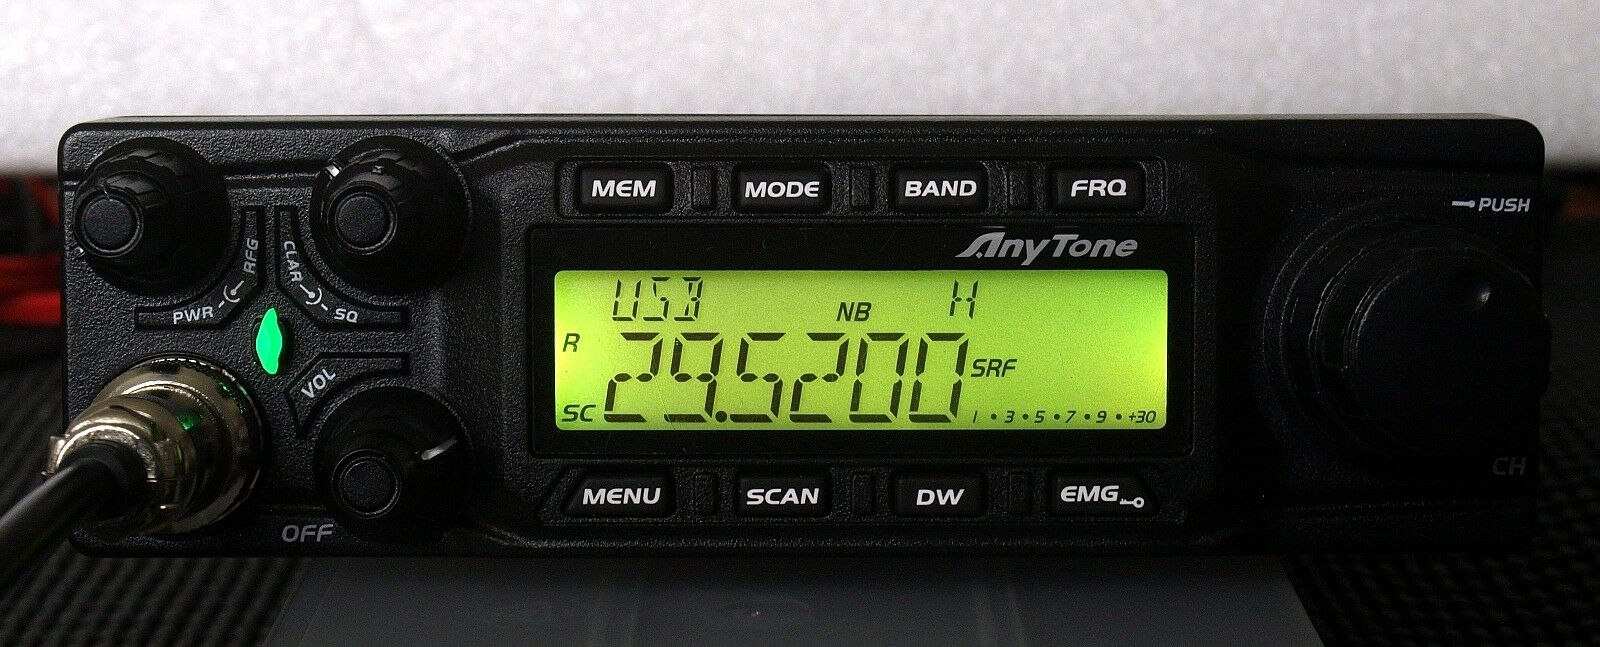 Anytone AT 6666 10 meter mobile Radio AM FM USB LSB PA. Buy it now for 239.00